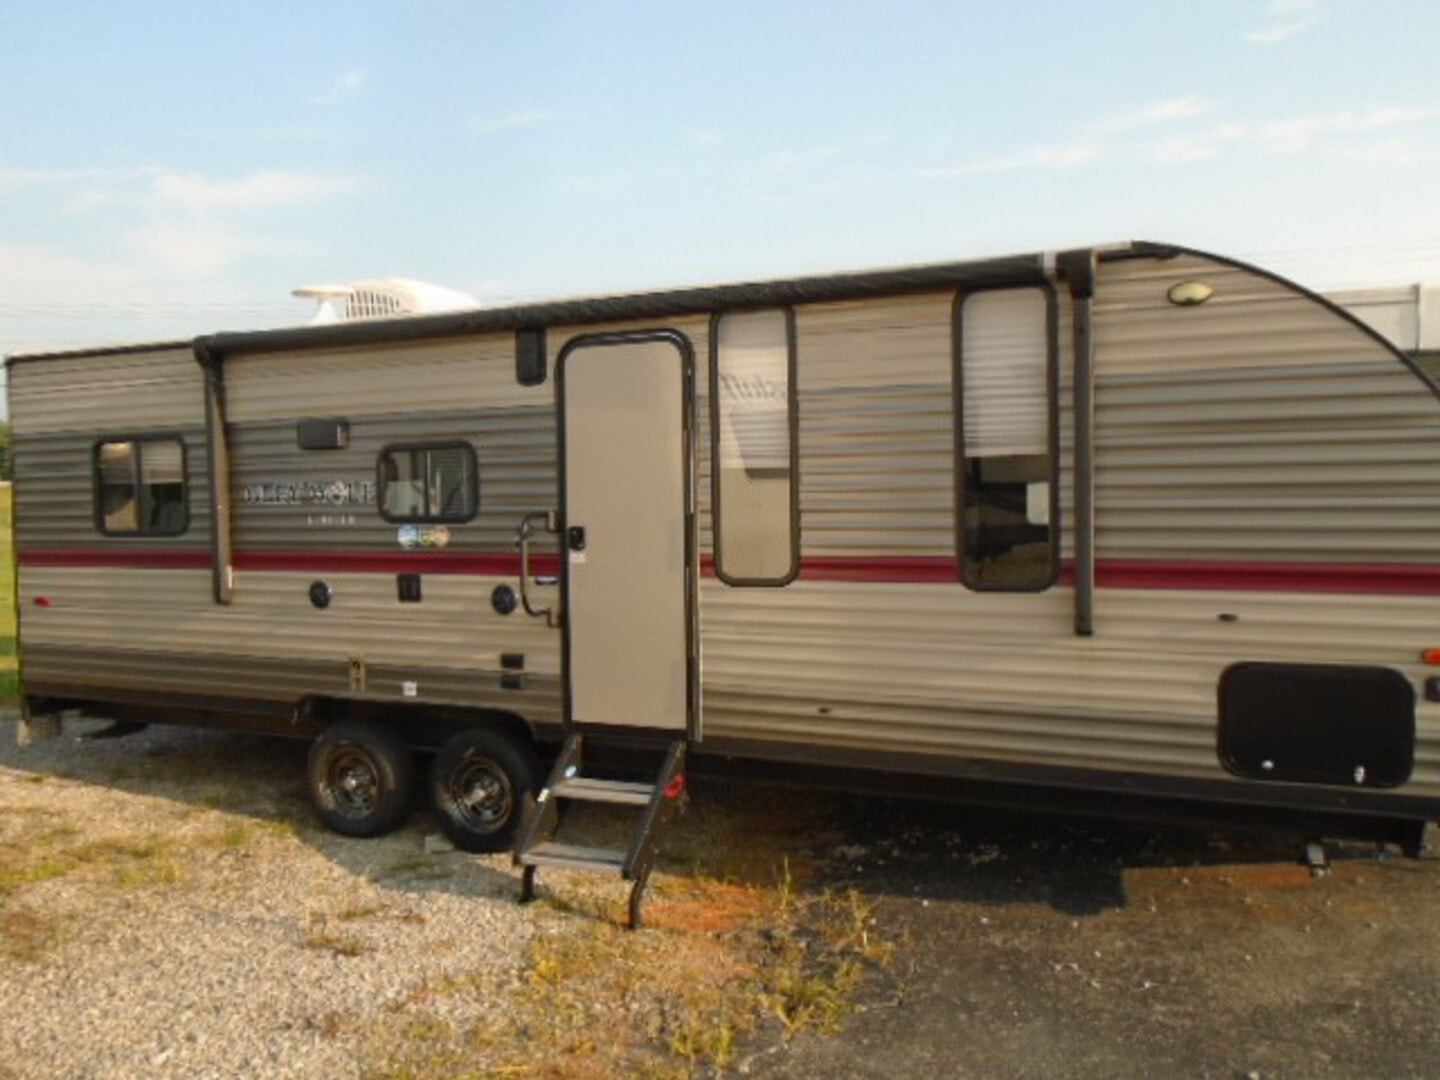 Used, 2018, Forest River, Greywolf 22 RR, Toy Haulers